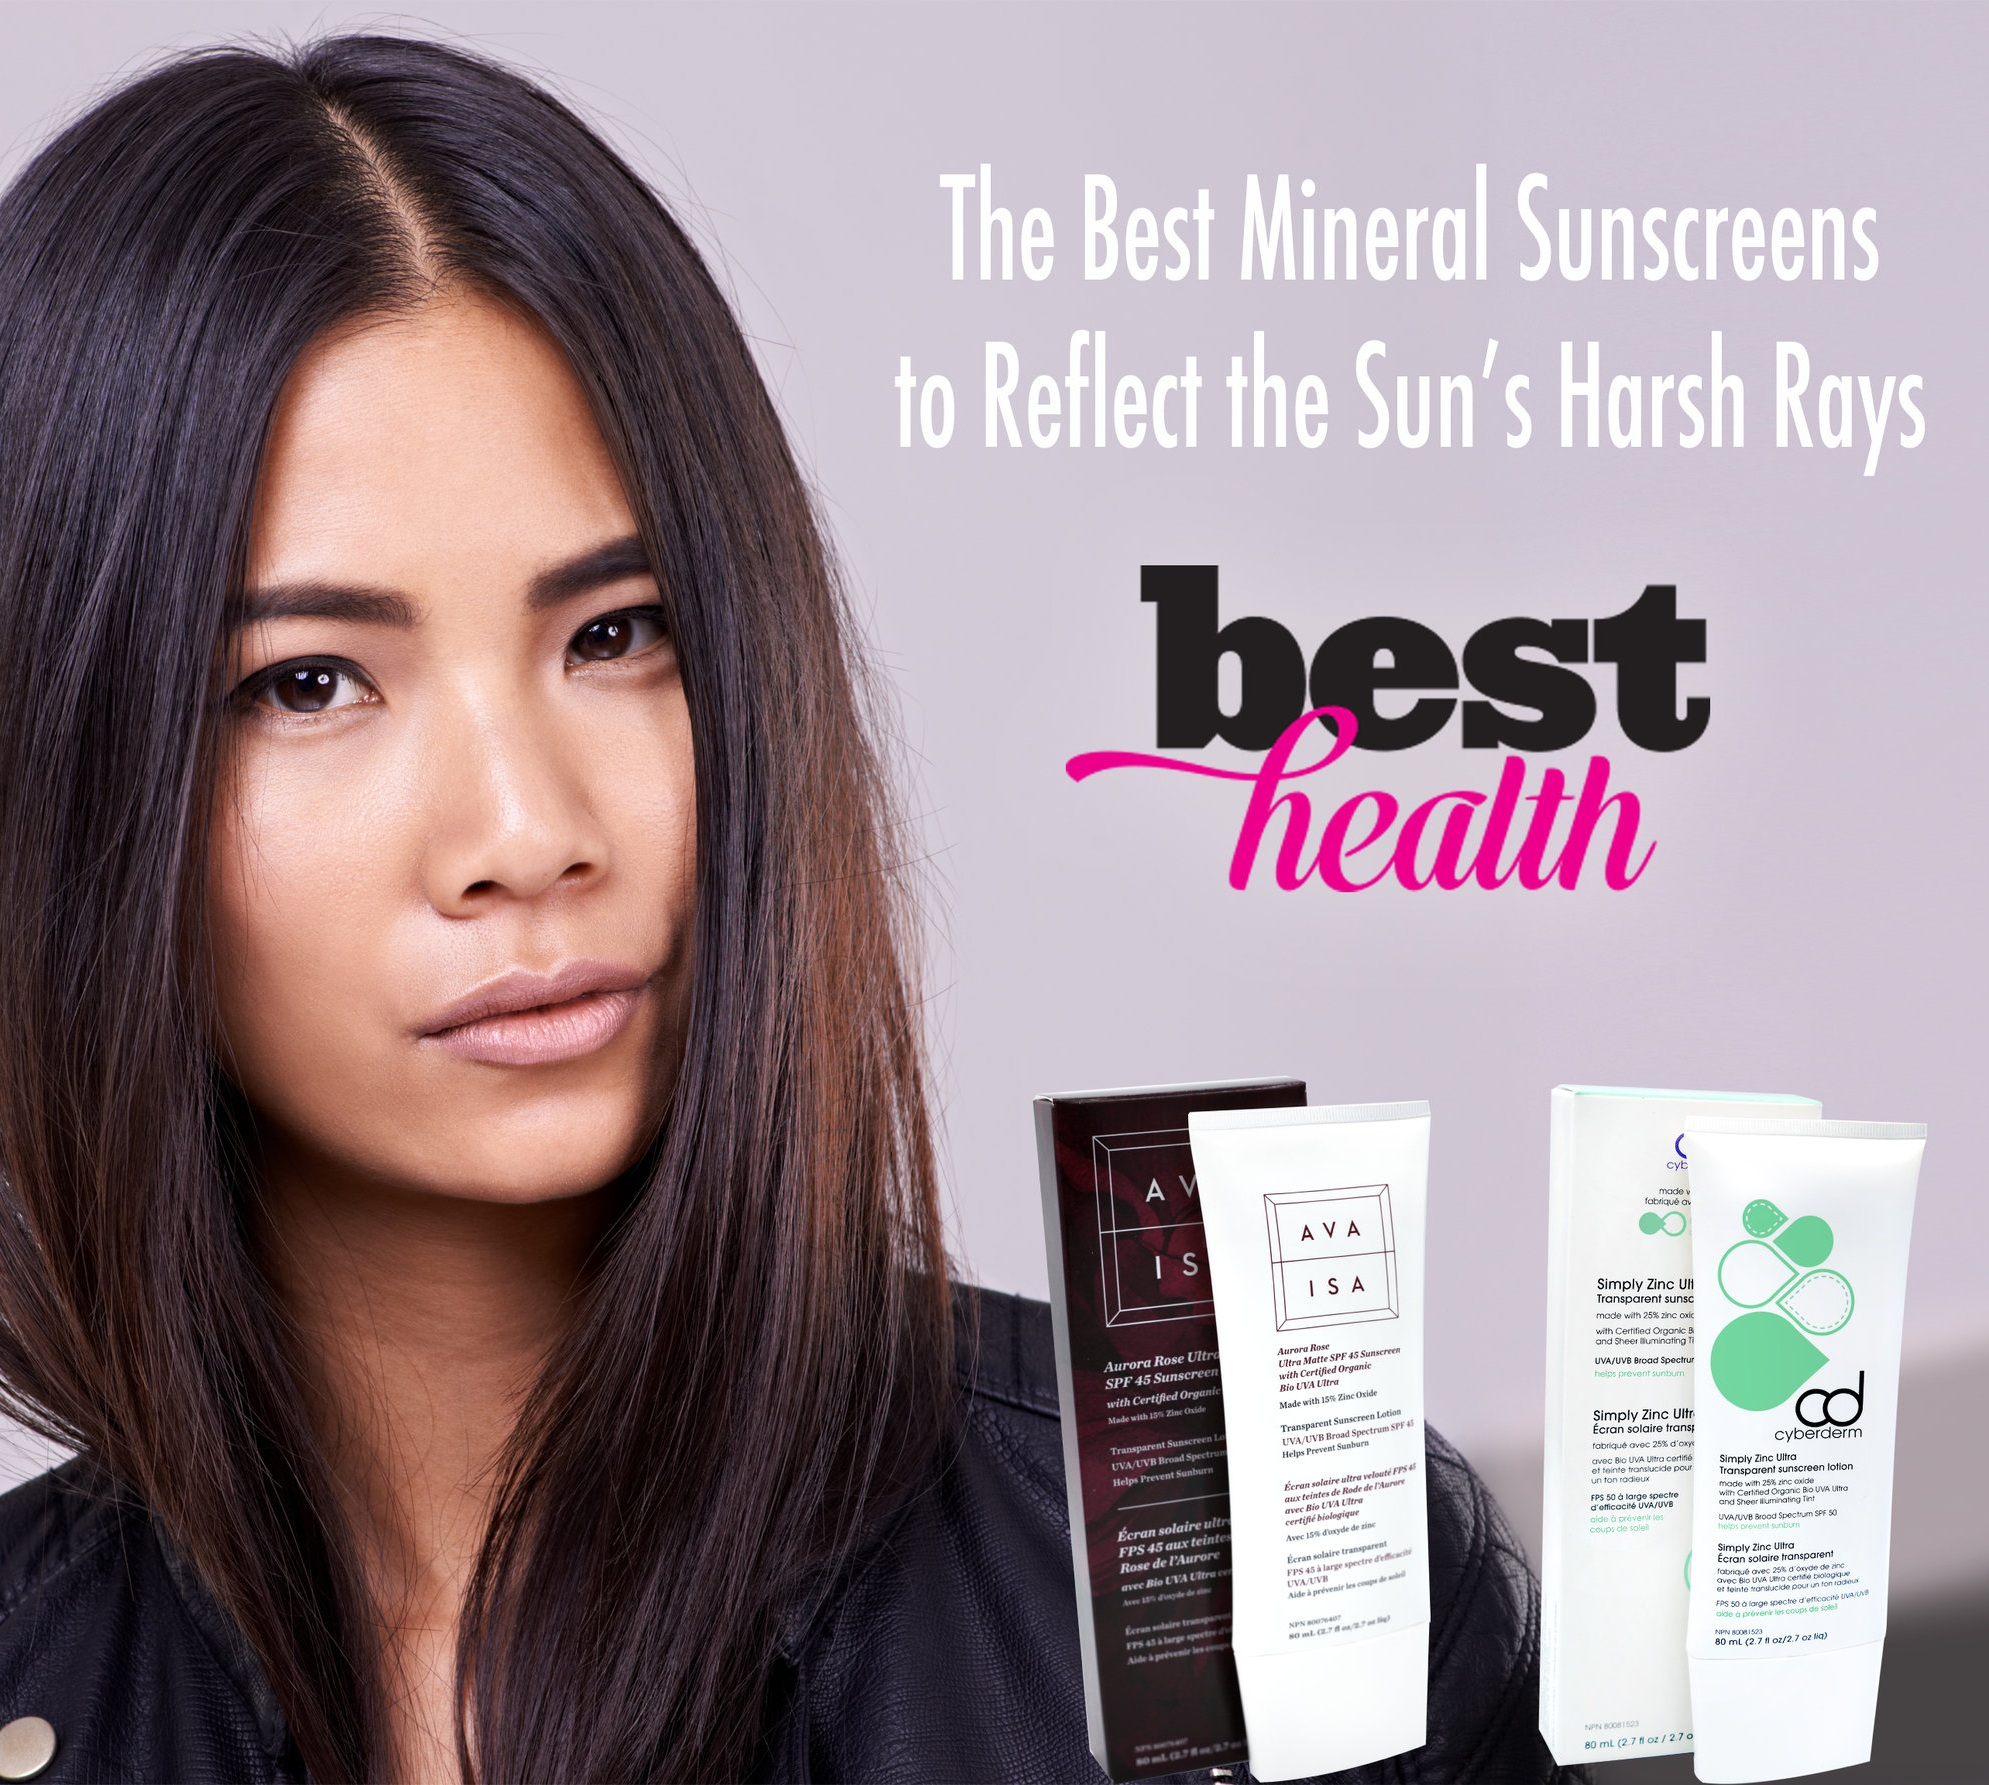 Best Health Reveals The Best Sunscreens You Can Buy In Canada. - Best Health has put together a list of the top sunscreens that reflect harsh UV rays the best, as well as helping educate Canadians on the benefits of choosing mineral sunscreens and the differences between physical vs chemicals spf's.Both our Ava Isa and CyberDERM sunscreens were named to this list of the best mineral sunscreens on the market in Canada. It's a great read that you should definitely check out!